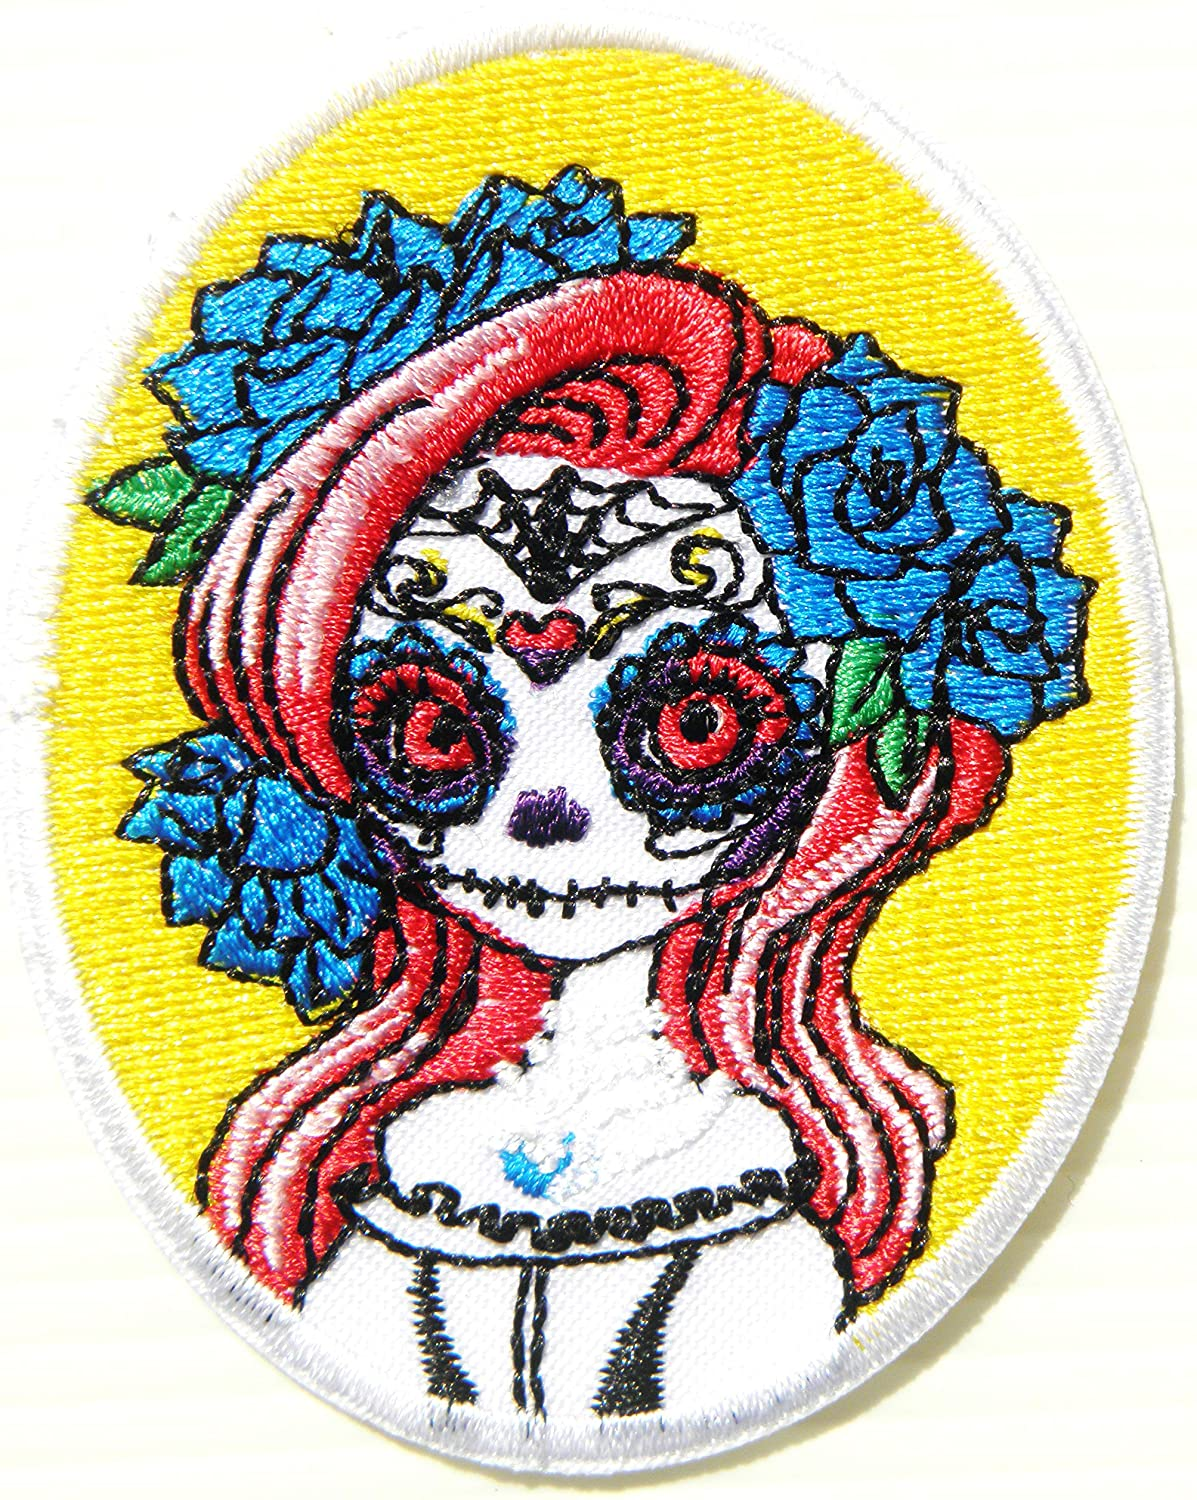 Lady Vintage Sugar Skull Rockabilly Old School Patch Iron on Transfer Sew Embroidery Applique for Clothes Leather Jean T Shirt Jacket Craft Costume Badge Sign Emblem Gift Costume